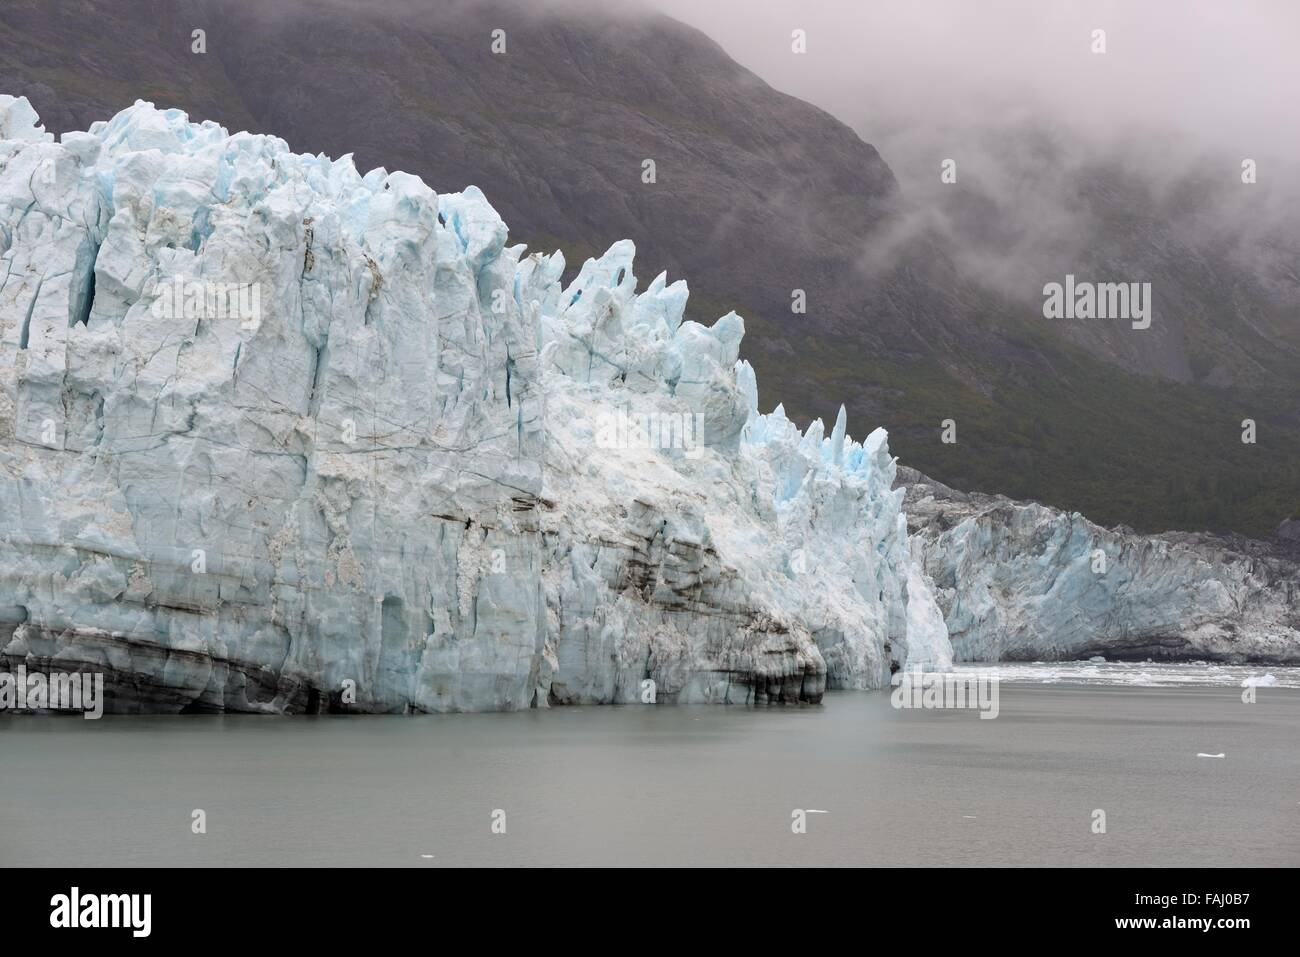 The constantly moving ice field of Glacier bay, Alaska, USA - Stock Image